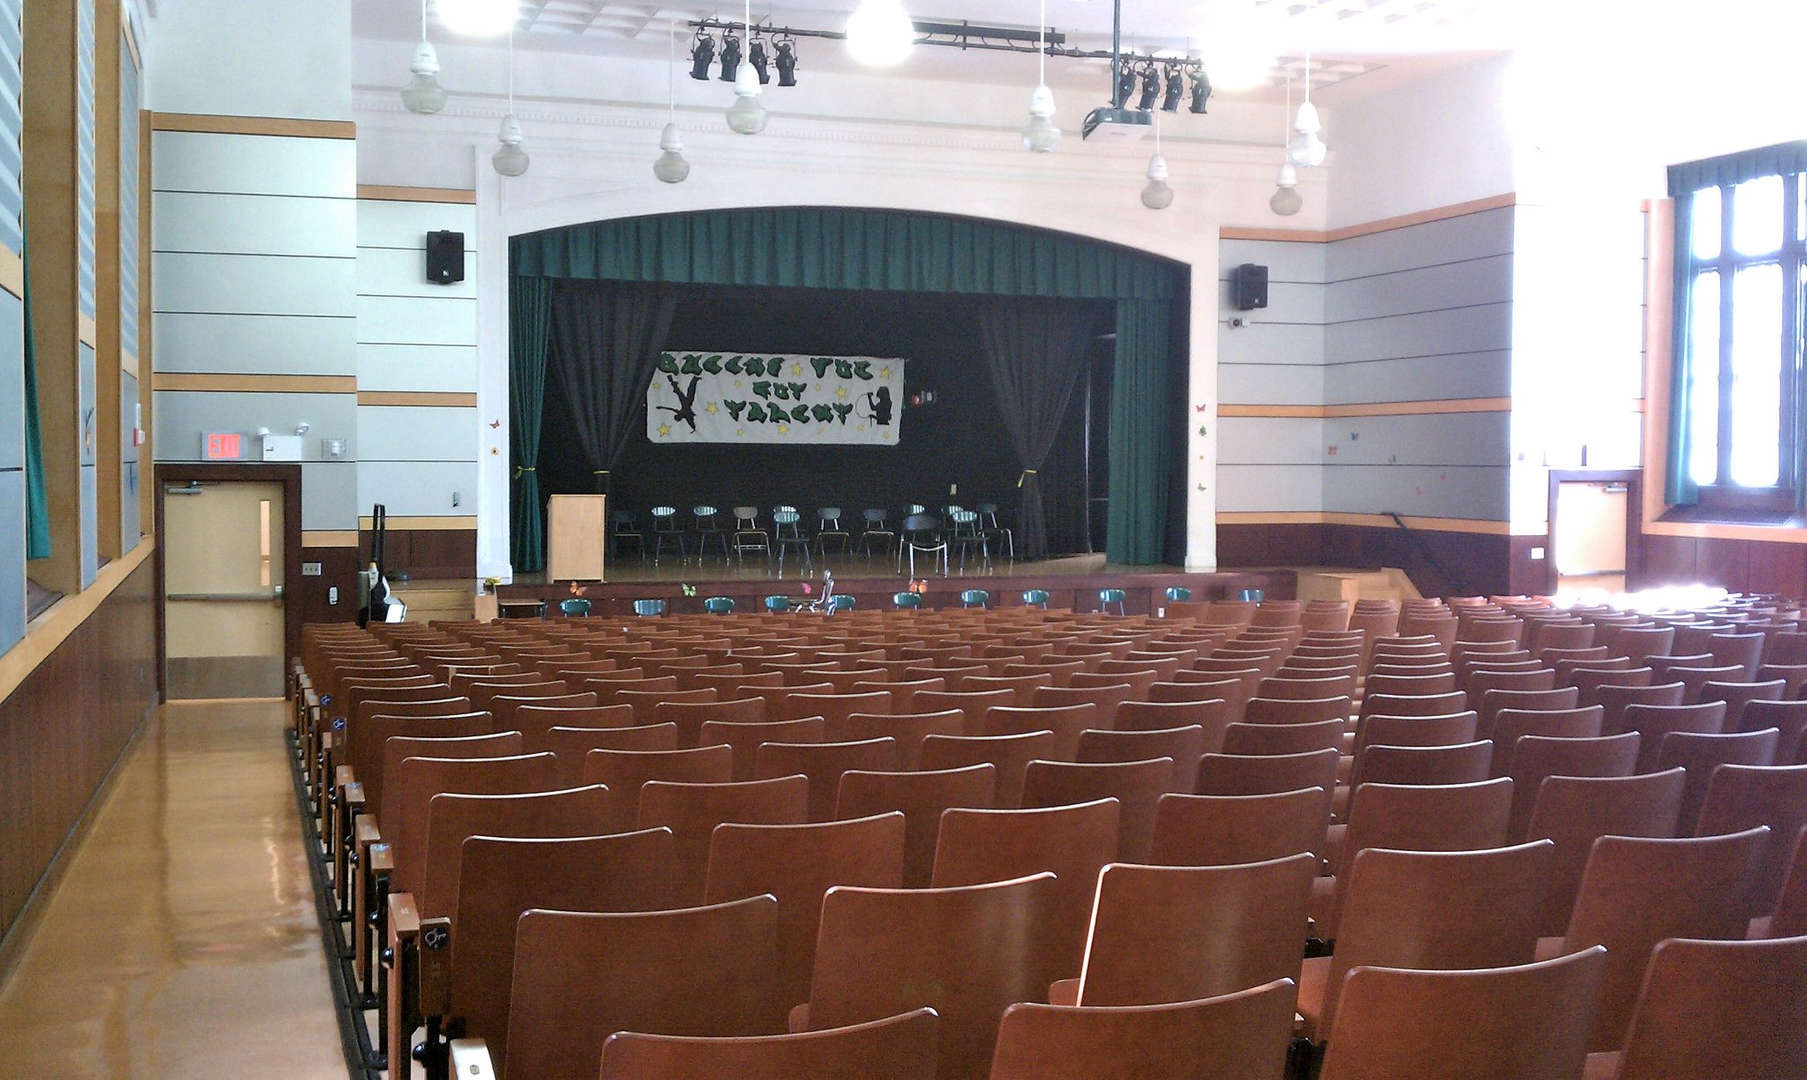 Our school auditorium